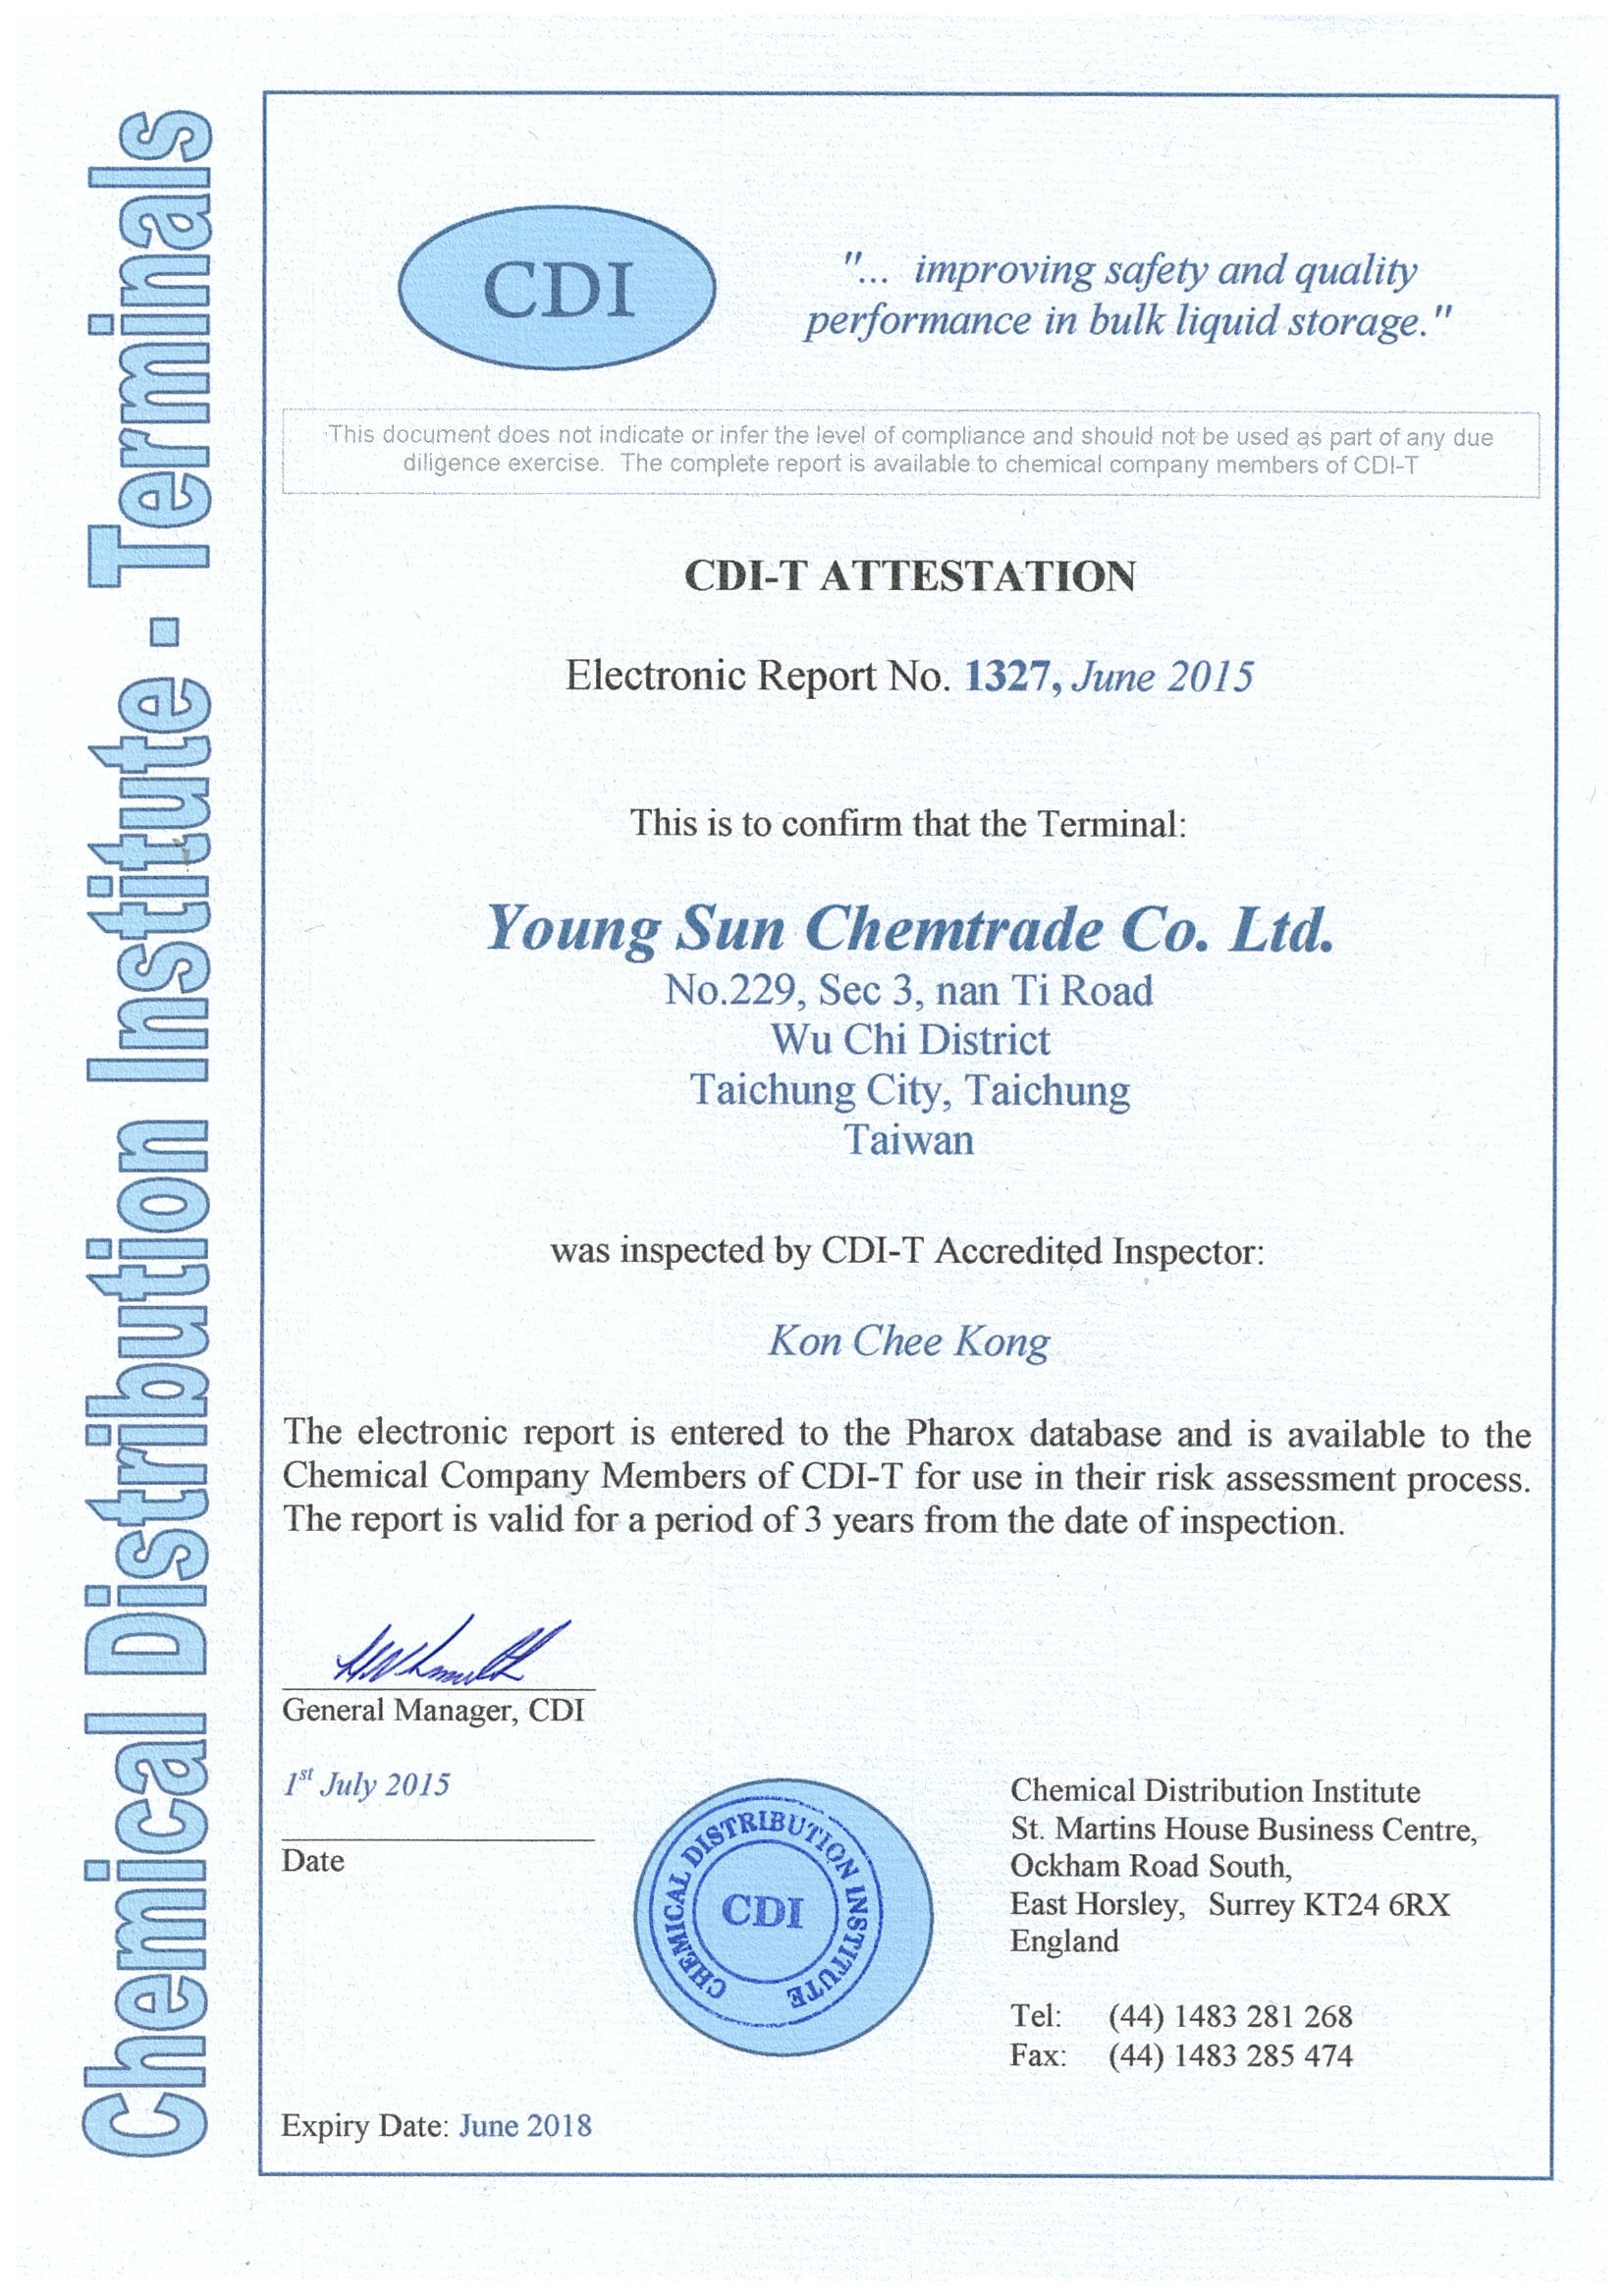 Young Sun Chemtrade Coltd